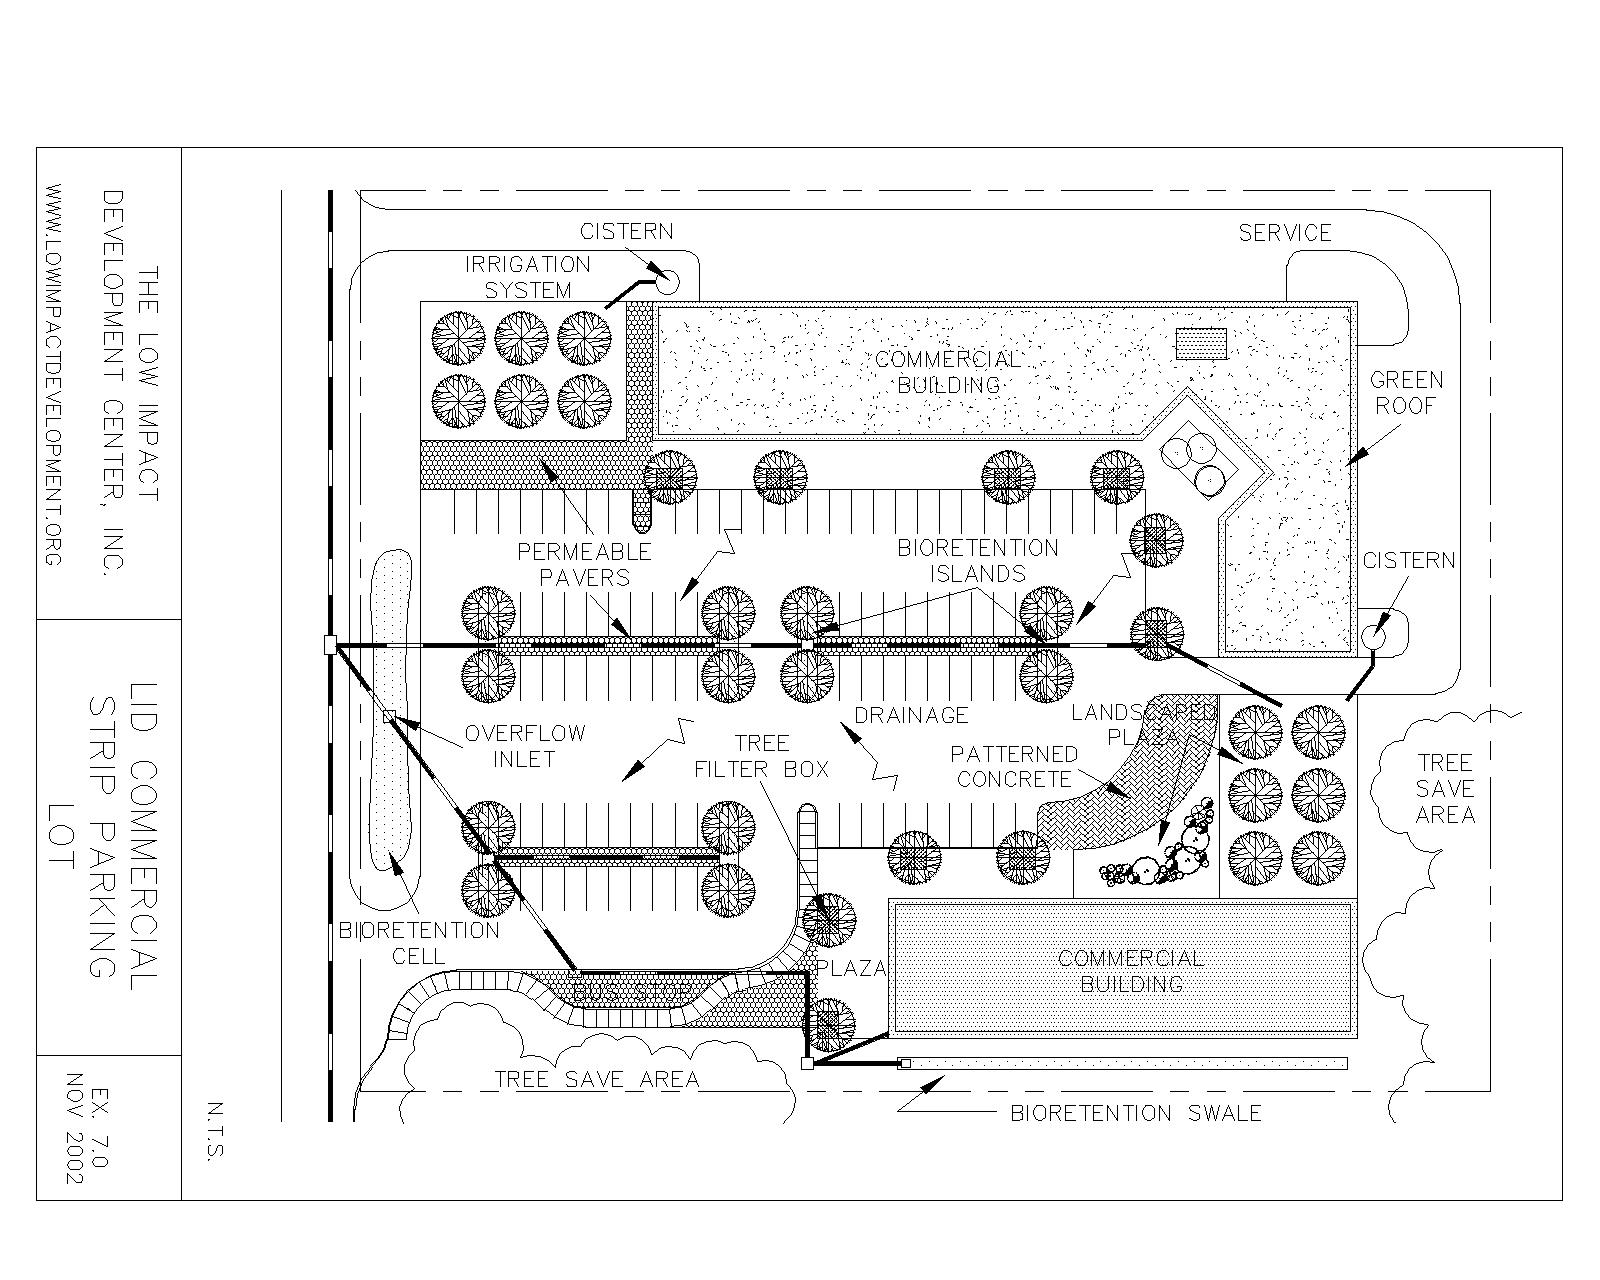 Parking Lot Design and Plans http://www.lid-stormwater.net/biocomind_home.htm